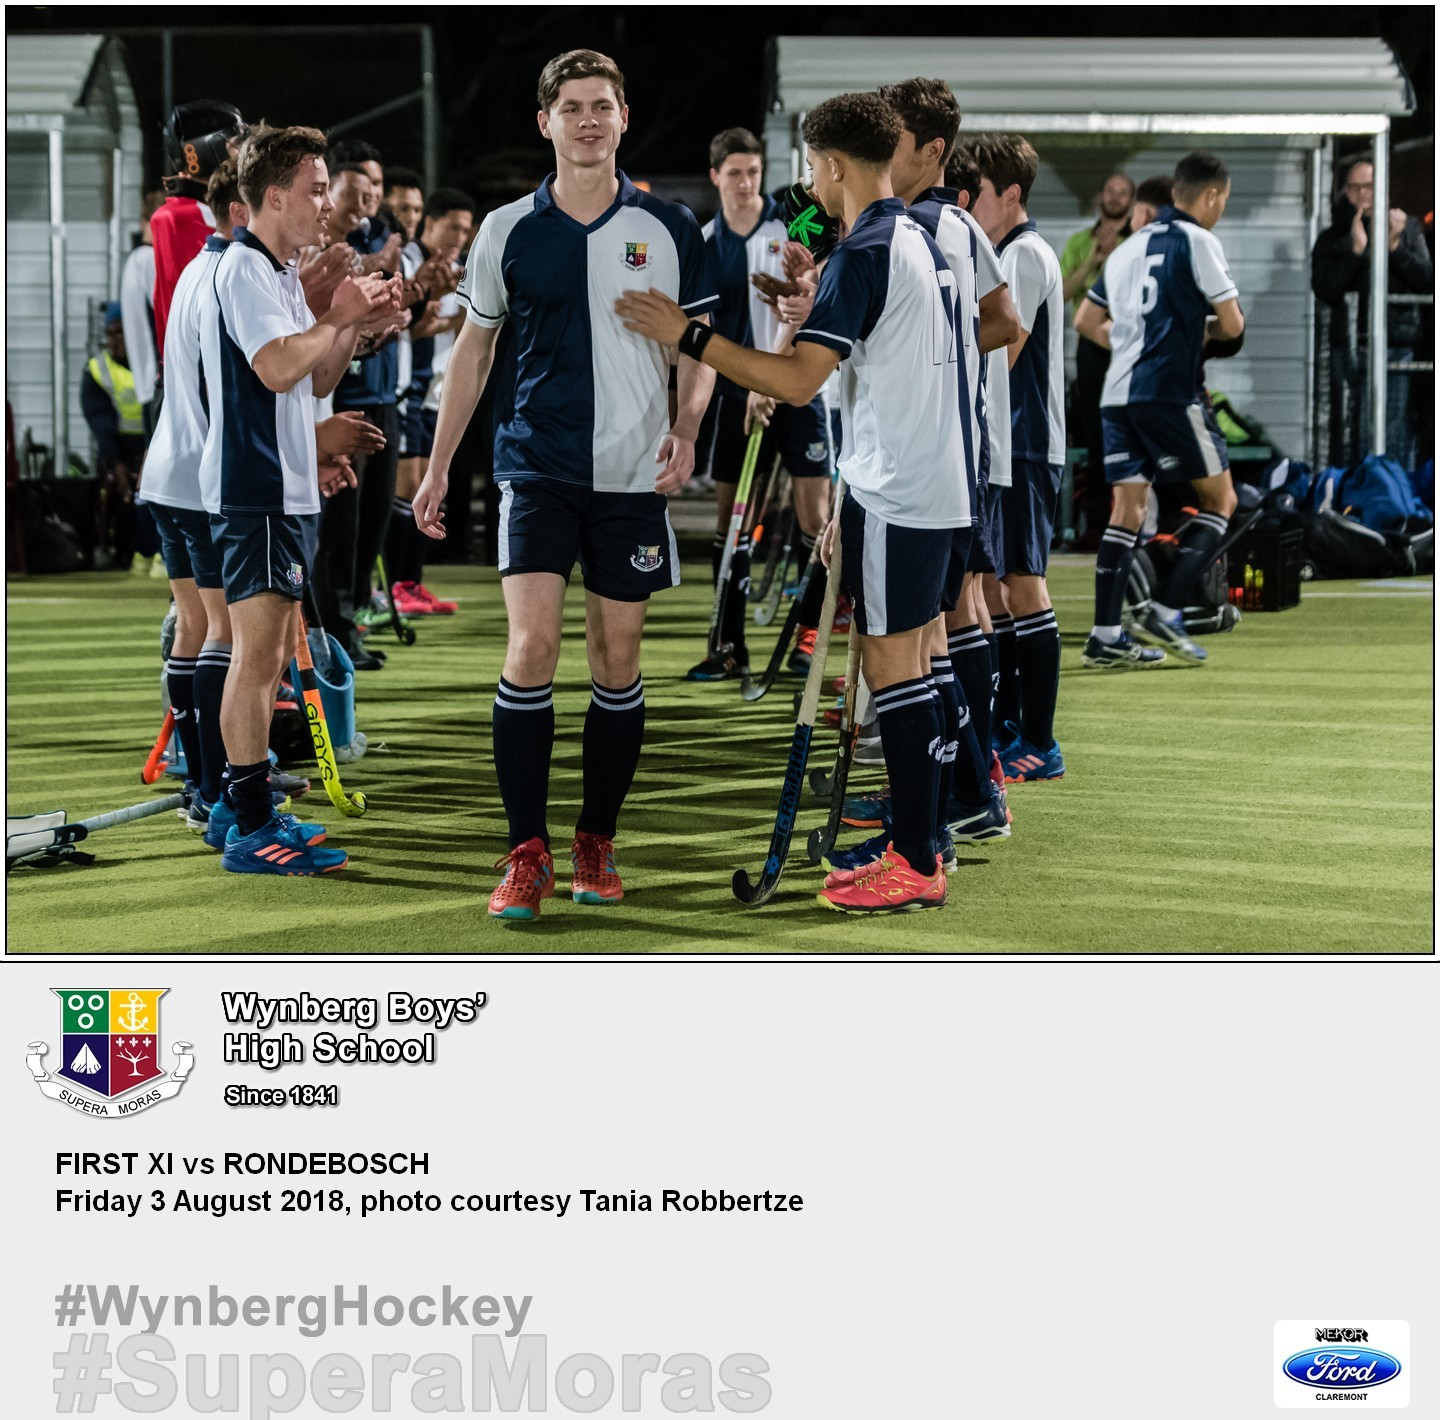 1st XI vs Rondebosch, Friday 3 August 2018